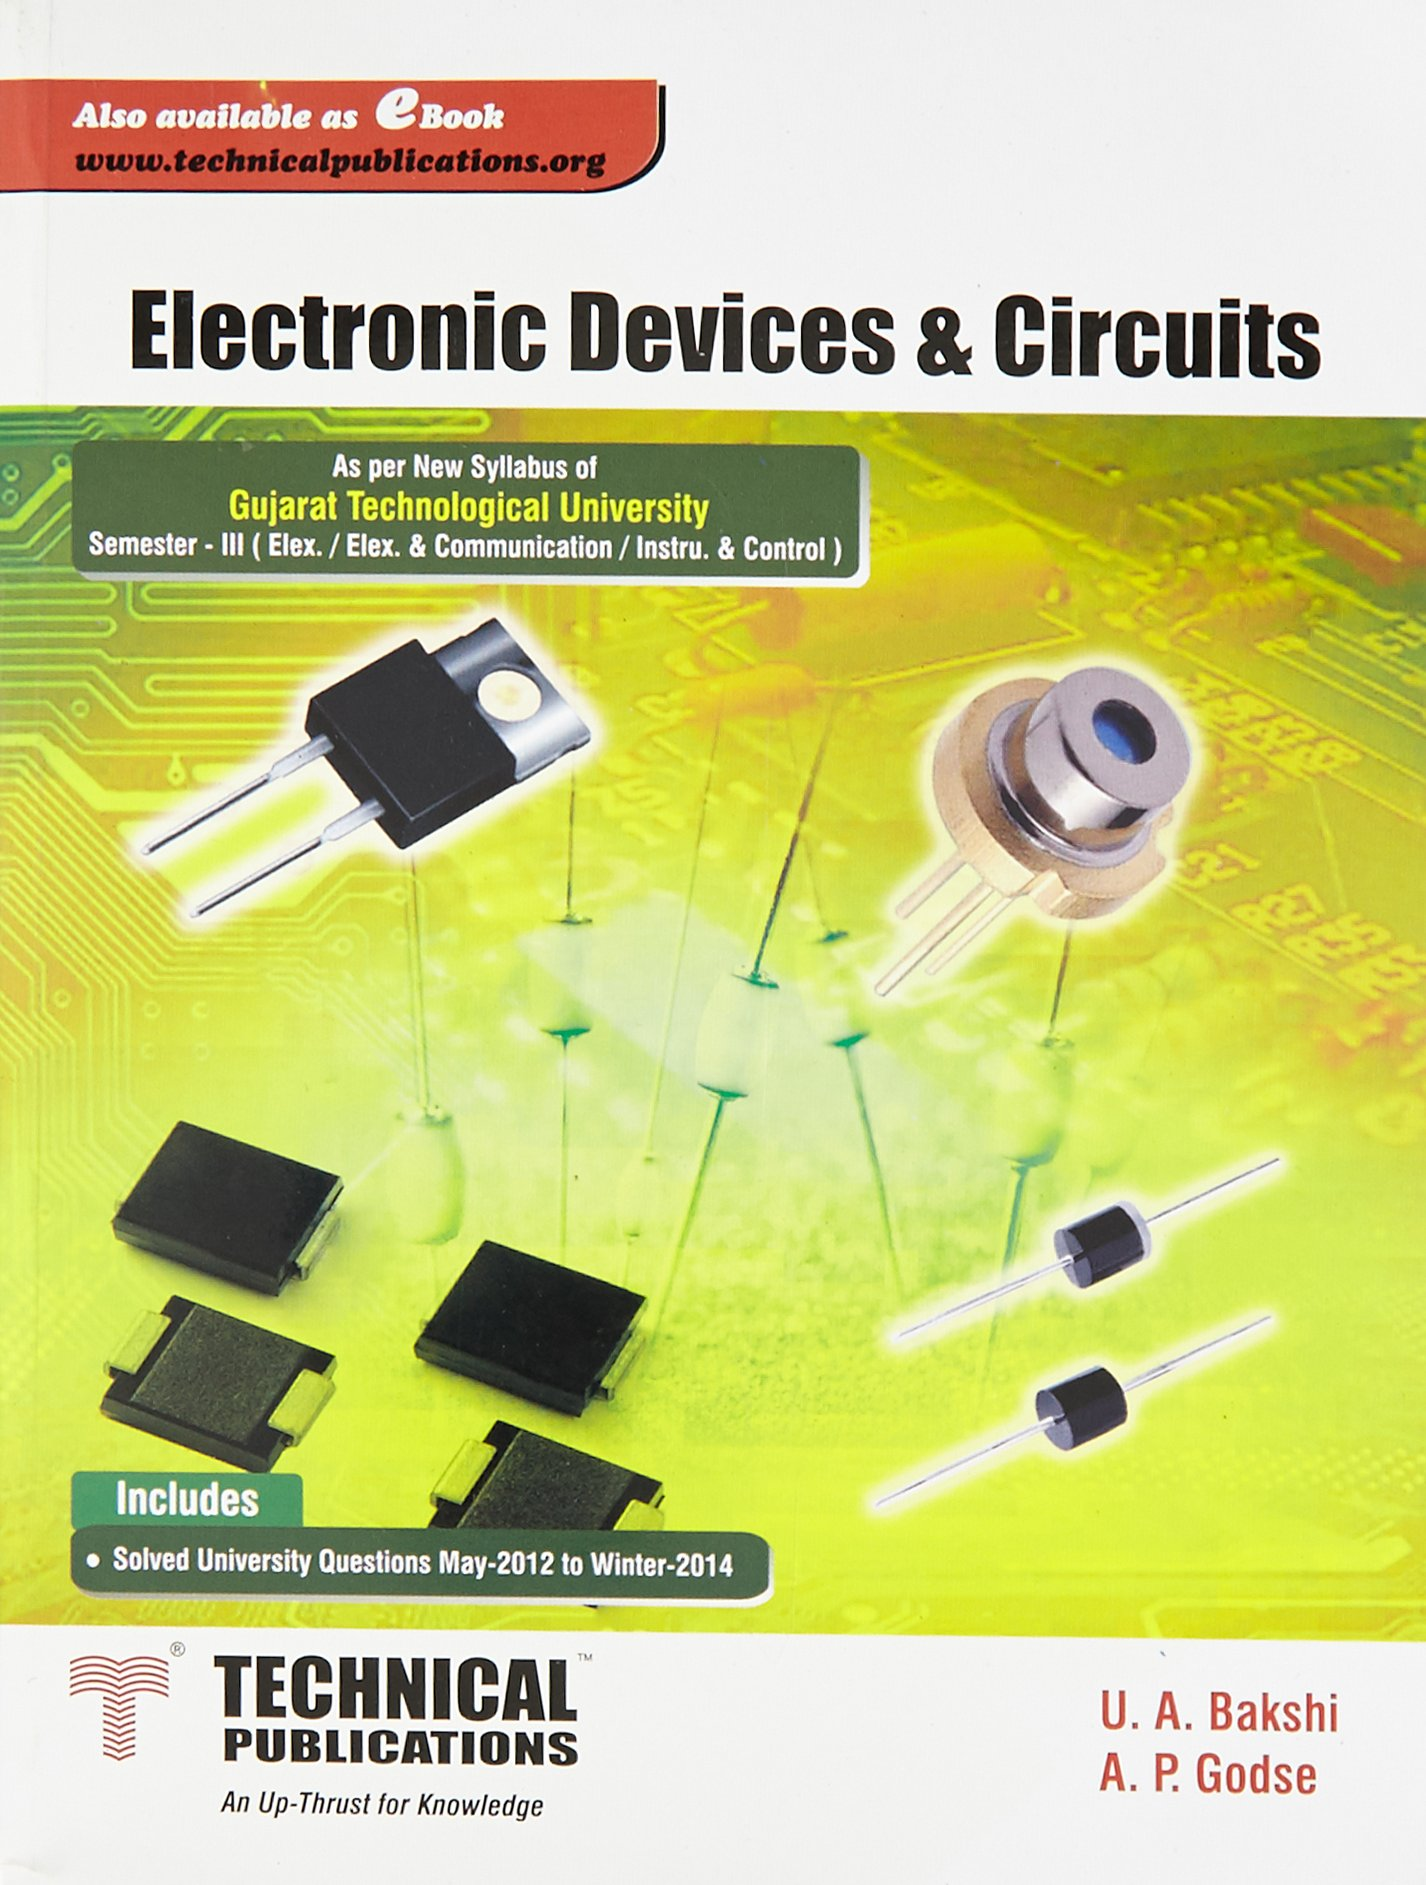 ELECTRONICS DEVICES AND CIRCUITS BY GODSE AND BAKSHI PDF